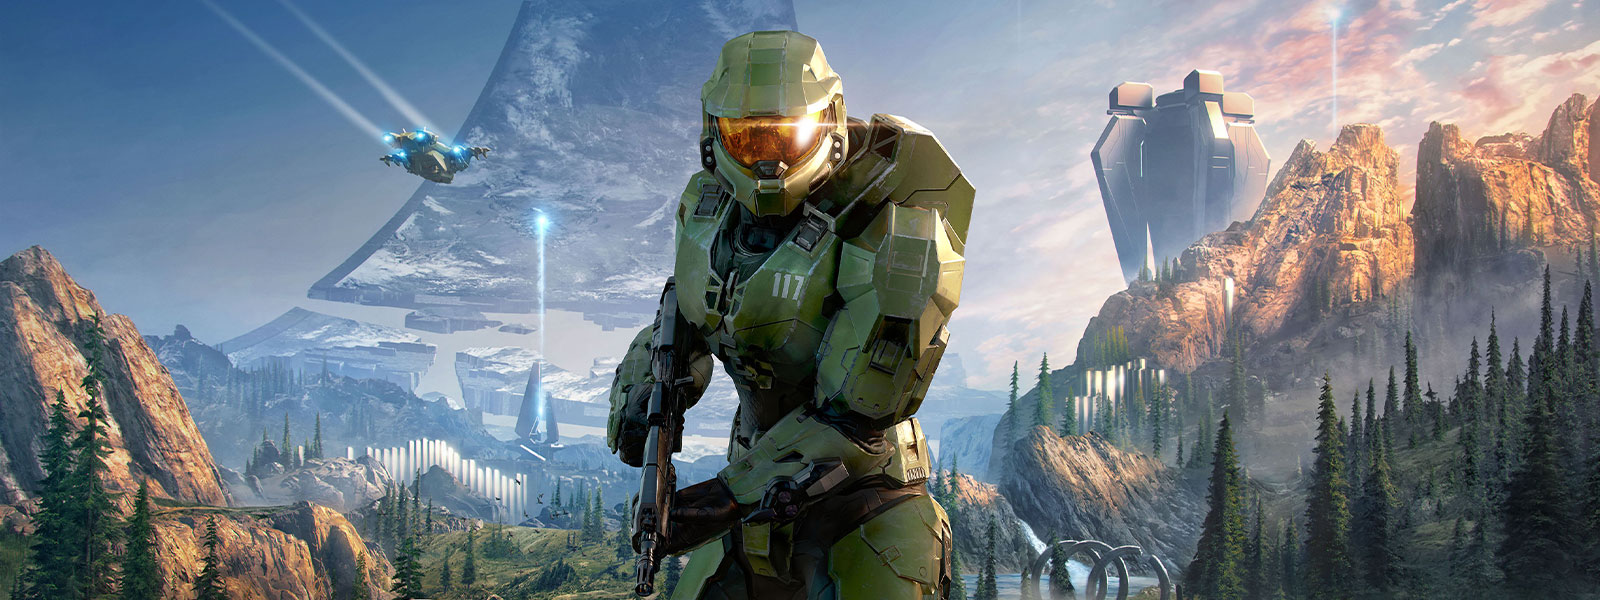 Master Chief holding an assault rifle with the ring in the background